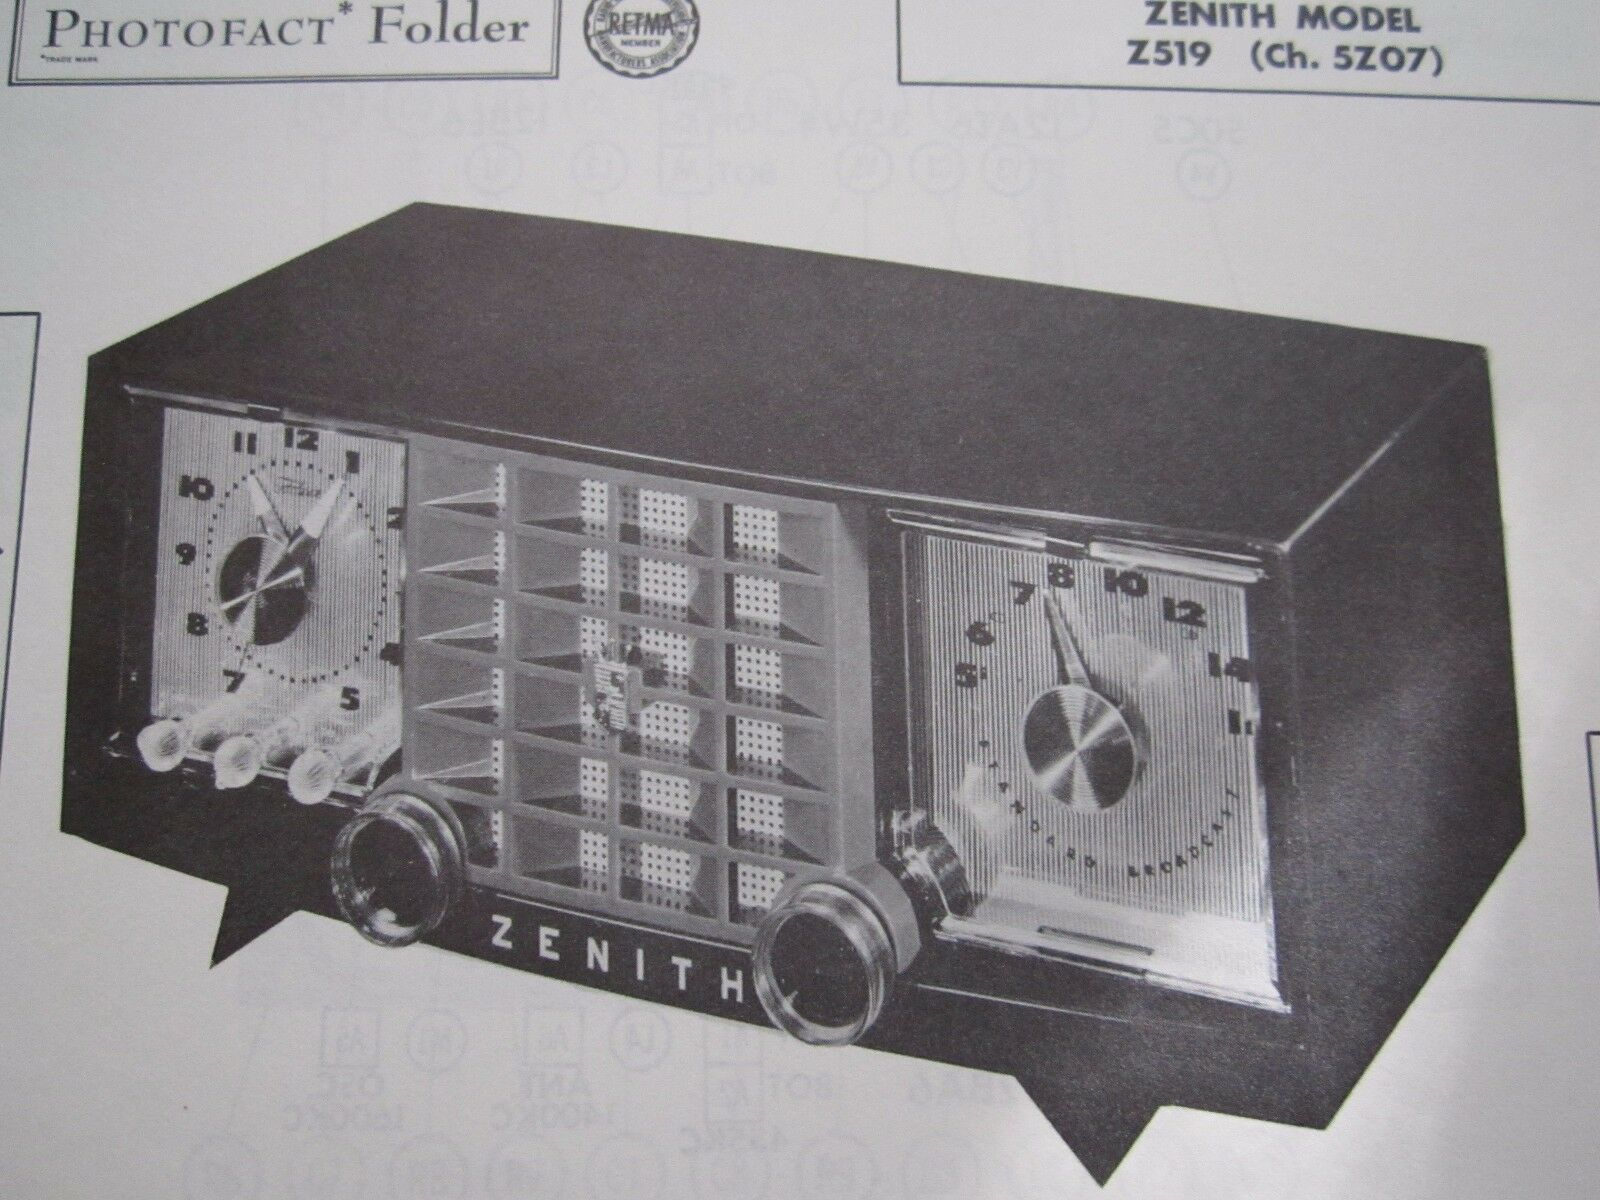 Zenith Z519 Radio Receiver Photofact 500 Picclick. 1 Of 1only 3 Available. Wiring. Zenith 5g03 Wiring Diagram At Scoala.co